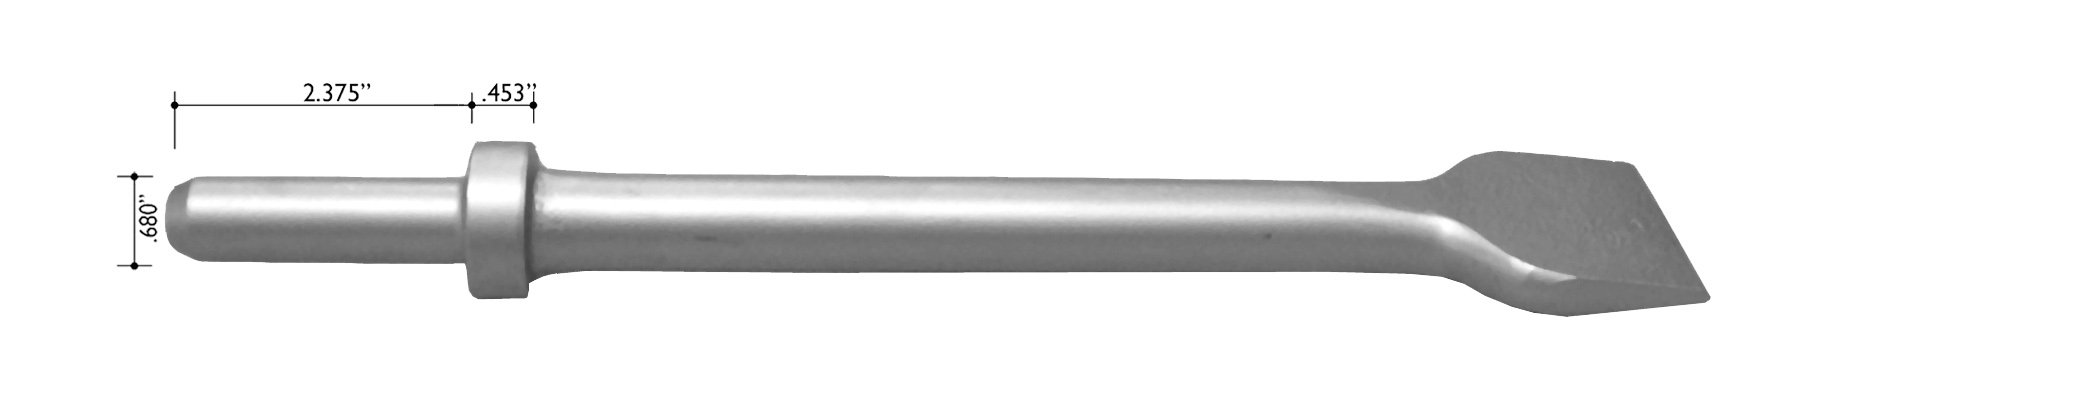 Champion Chisel, 18-Inch Long by 2-Inch Wide .680 Round Shank Round Collar Chipping Hammer Chisel